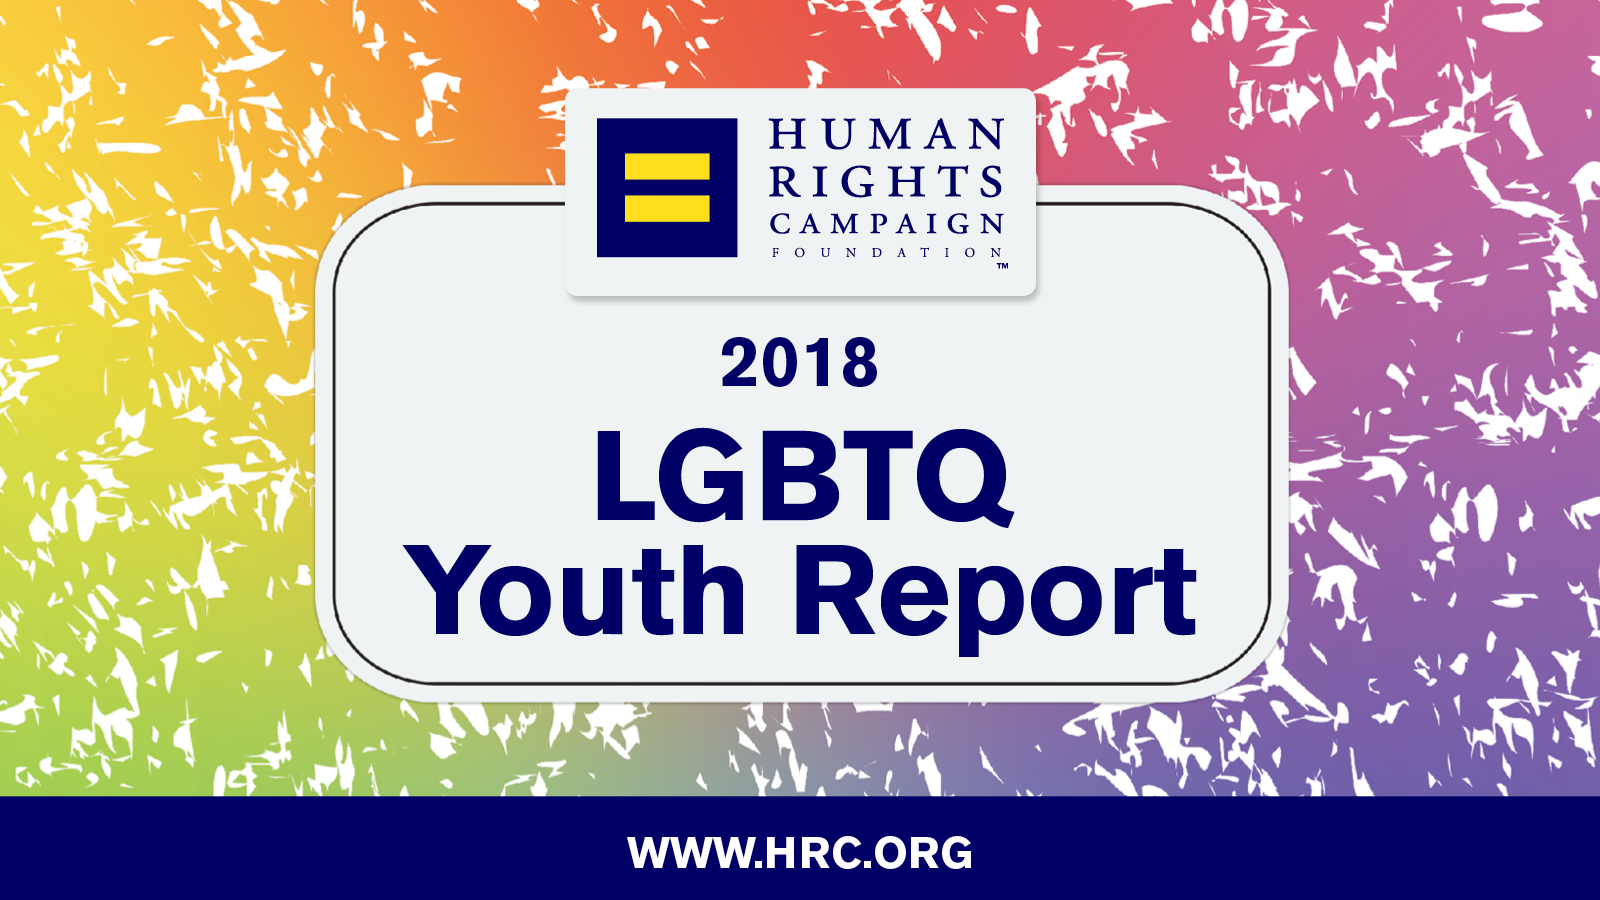 HRC, UCONN Survey Finds Anti-LGBTQ Bias Overwhelmingly Affects Health and Well-being of LGBTQ Teens